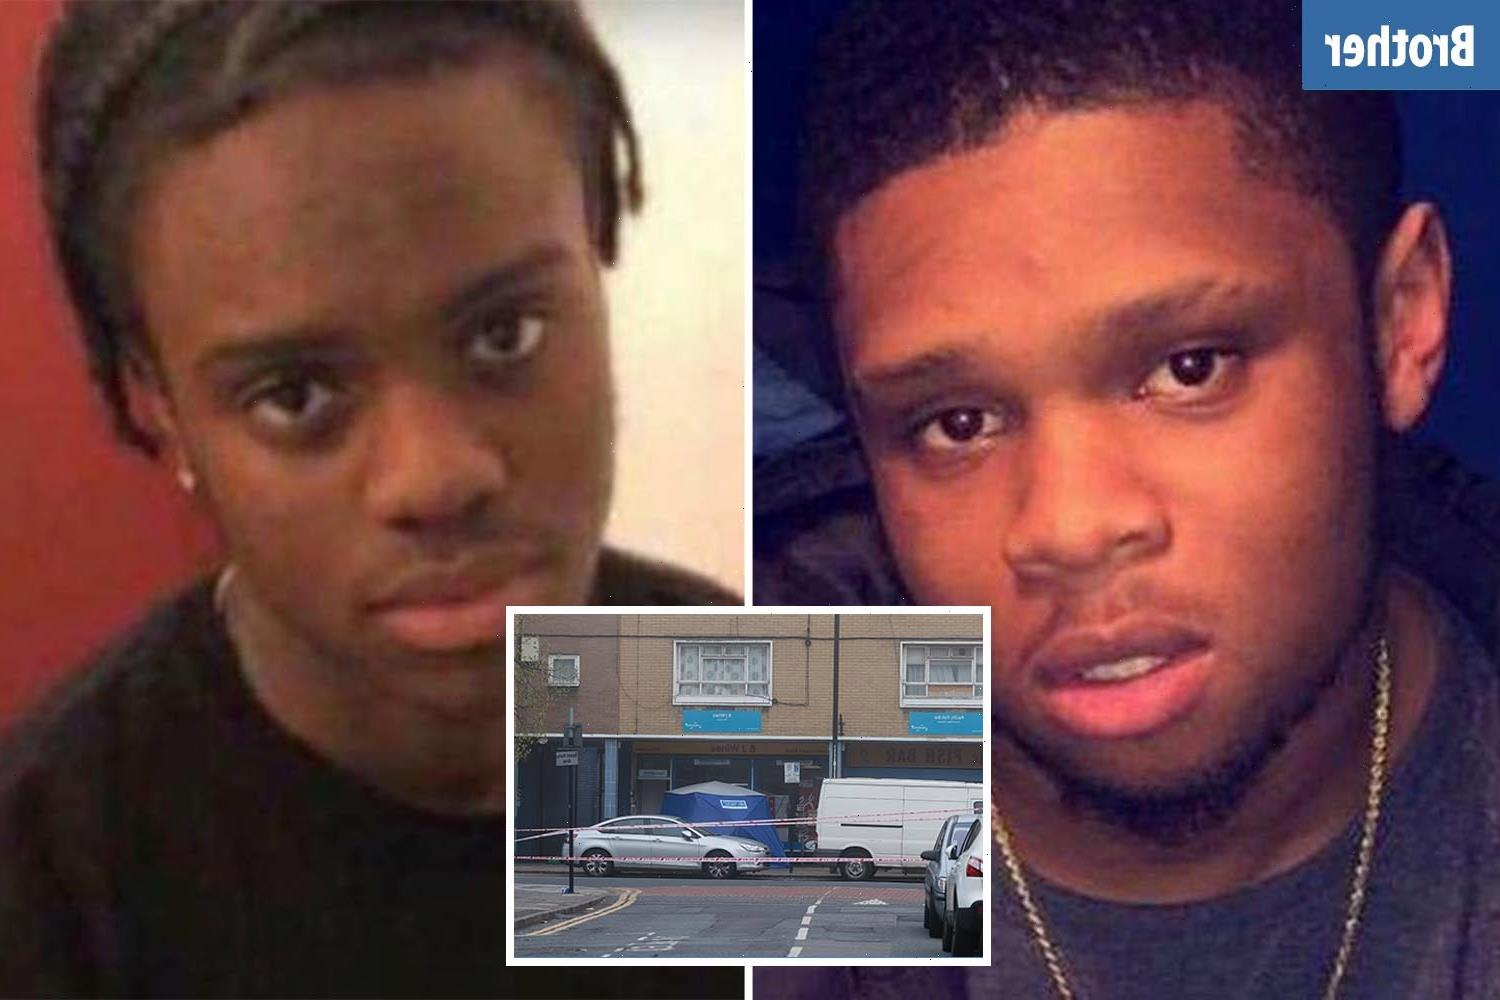 Teen, 18, was shot and stabbed in 'targeted attack' by 'man in car' just 150 yards from where brother was murdered